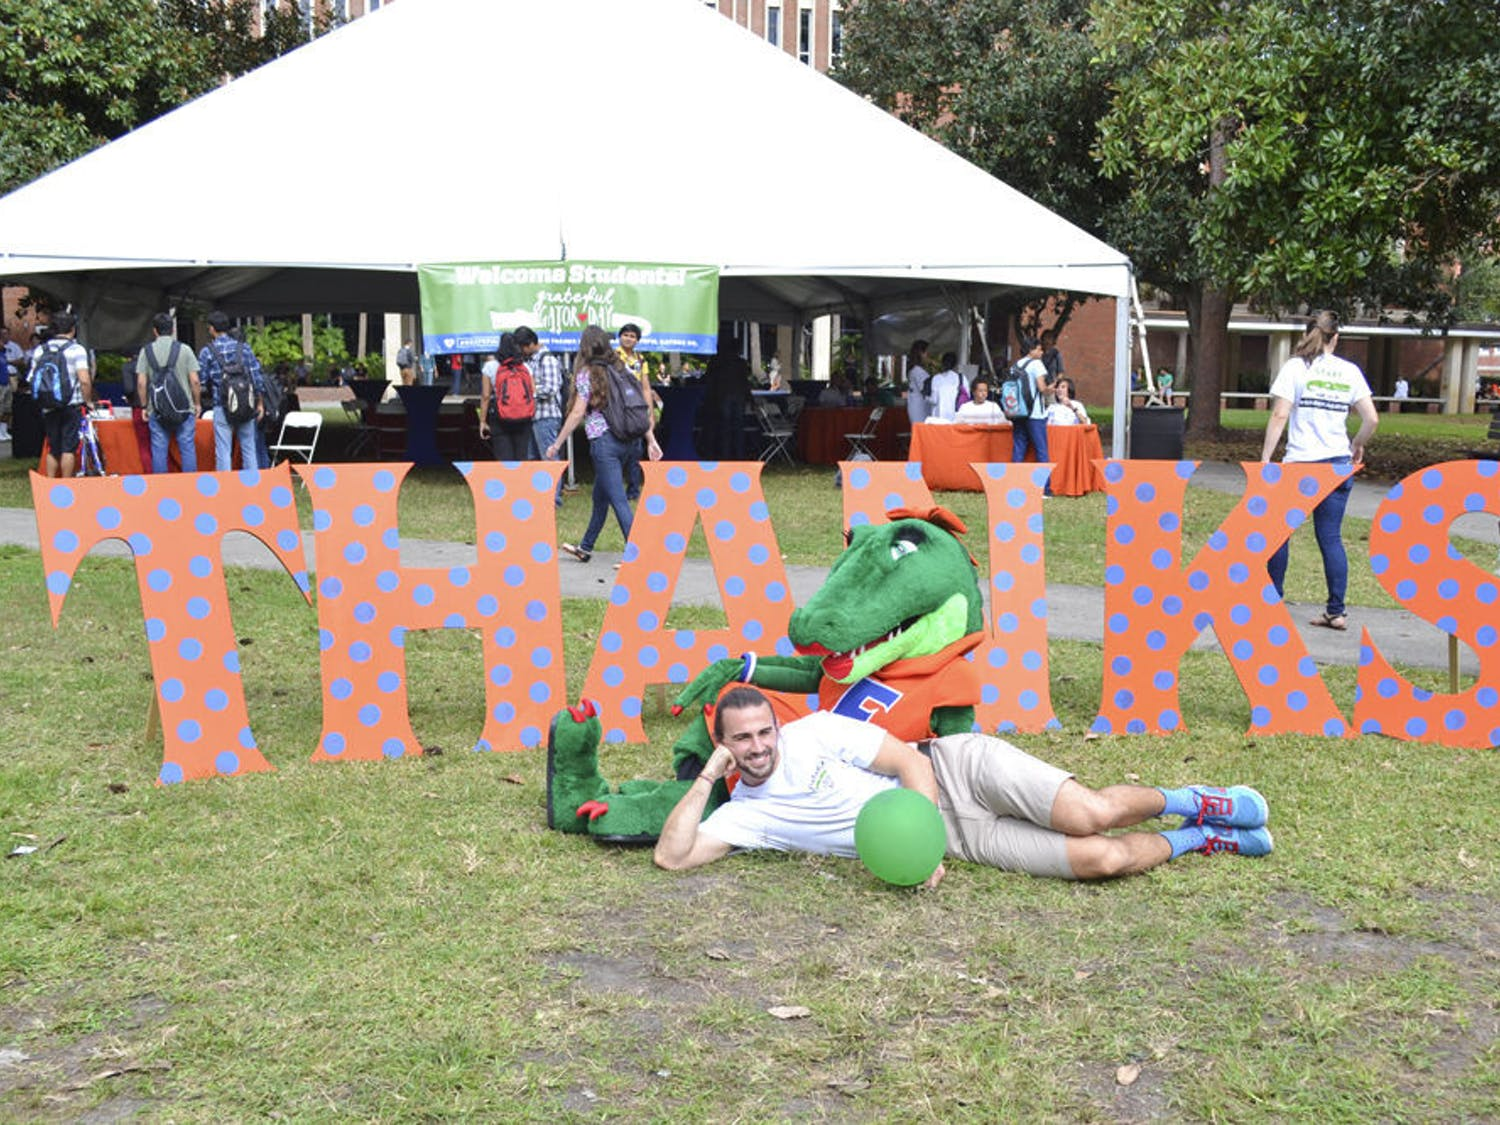 """It was the week before Thanksgiving, but several hundred UF students gave thanks Wednesday morning during the first-ever Grateful Gator Day. Students thanked about 30,000 UF donors on the Plaza of the Americas by writing about 1,000 handwritten orange cards, video-taping their Gator Chomps and posing for photos with a giant, polka-dotted """"THANKS."""" The event served to make students aware of how much money people donate to the university, said Kevin Marfiak, a 23-year-old UF biology senior and Cicerone who helped plan the event."""